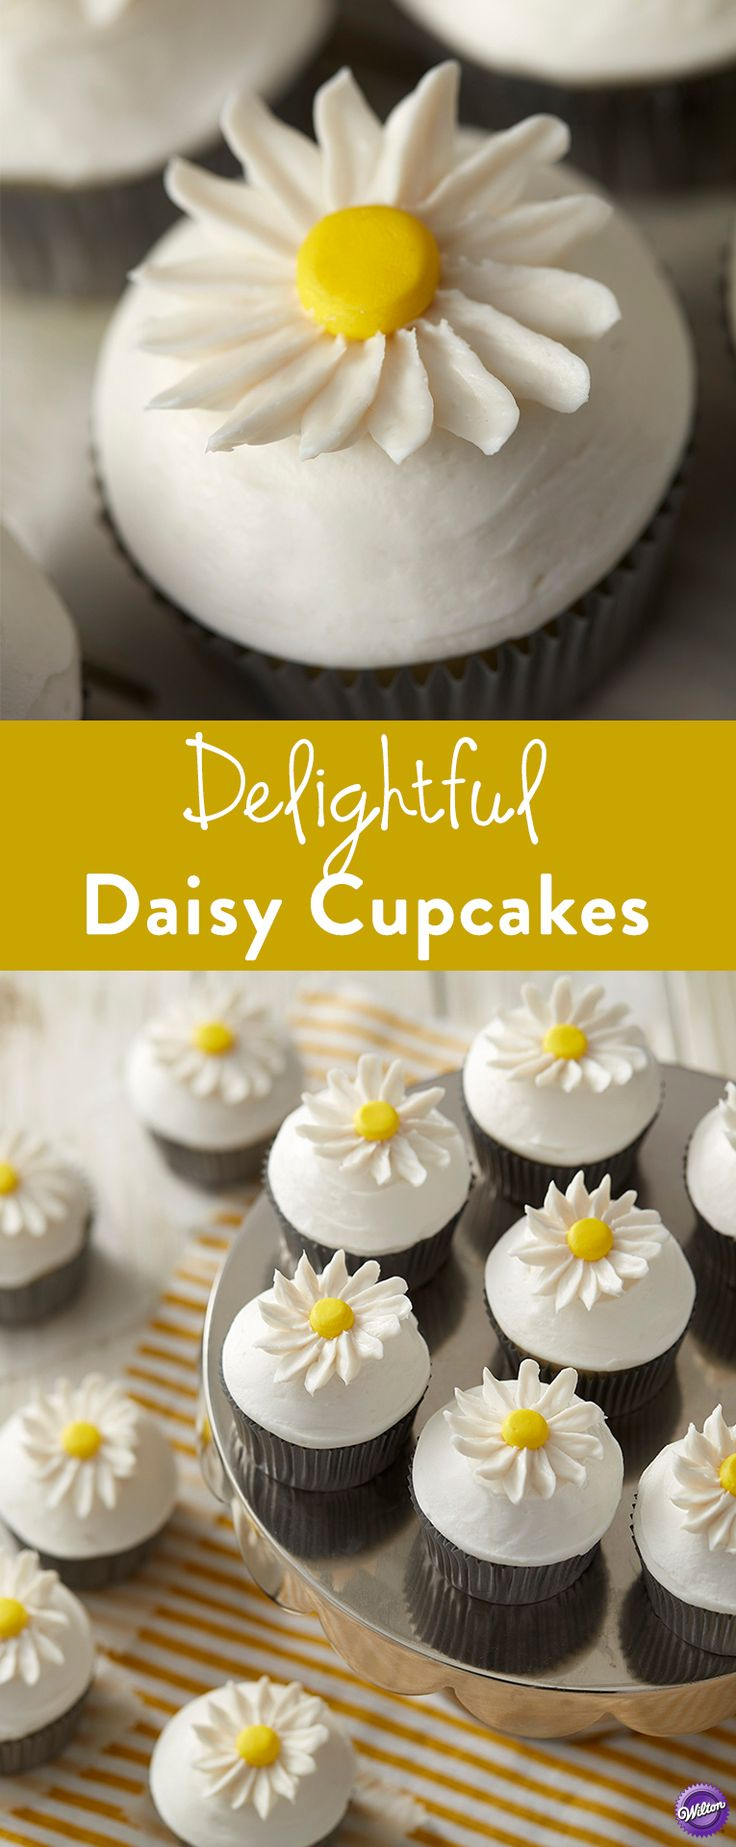 How to Bake Delightful Daisy Cupcakes - Topped with buttercream flowers, these cheerful cupcakes are sure to make any spring or summer celebration just a little bit sweeter!